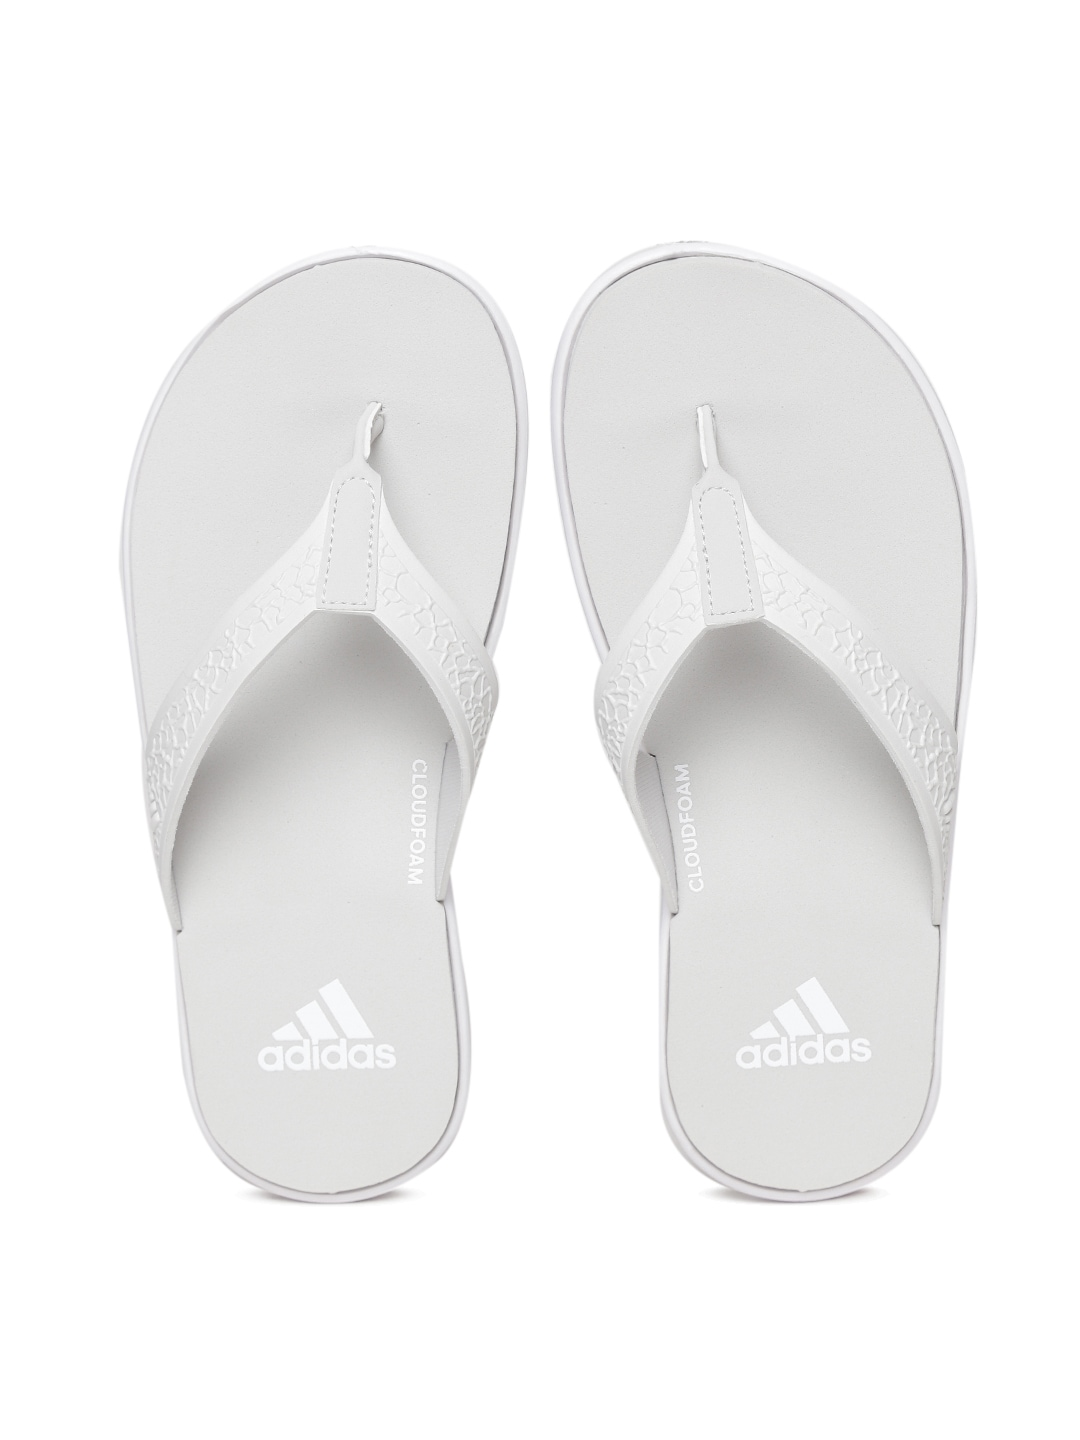 58f1844363e8 Women Adidas Flip Flops Sandals - Buy Women Adidas Flip Flops Sandals  online in India